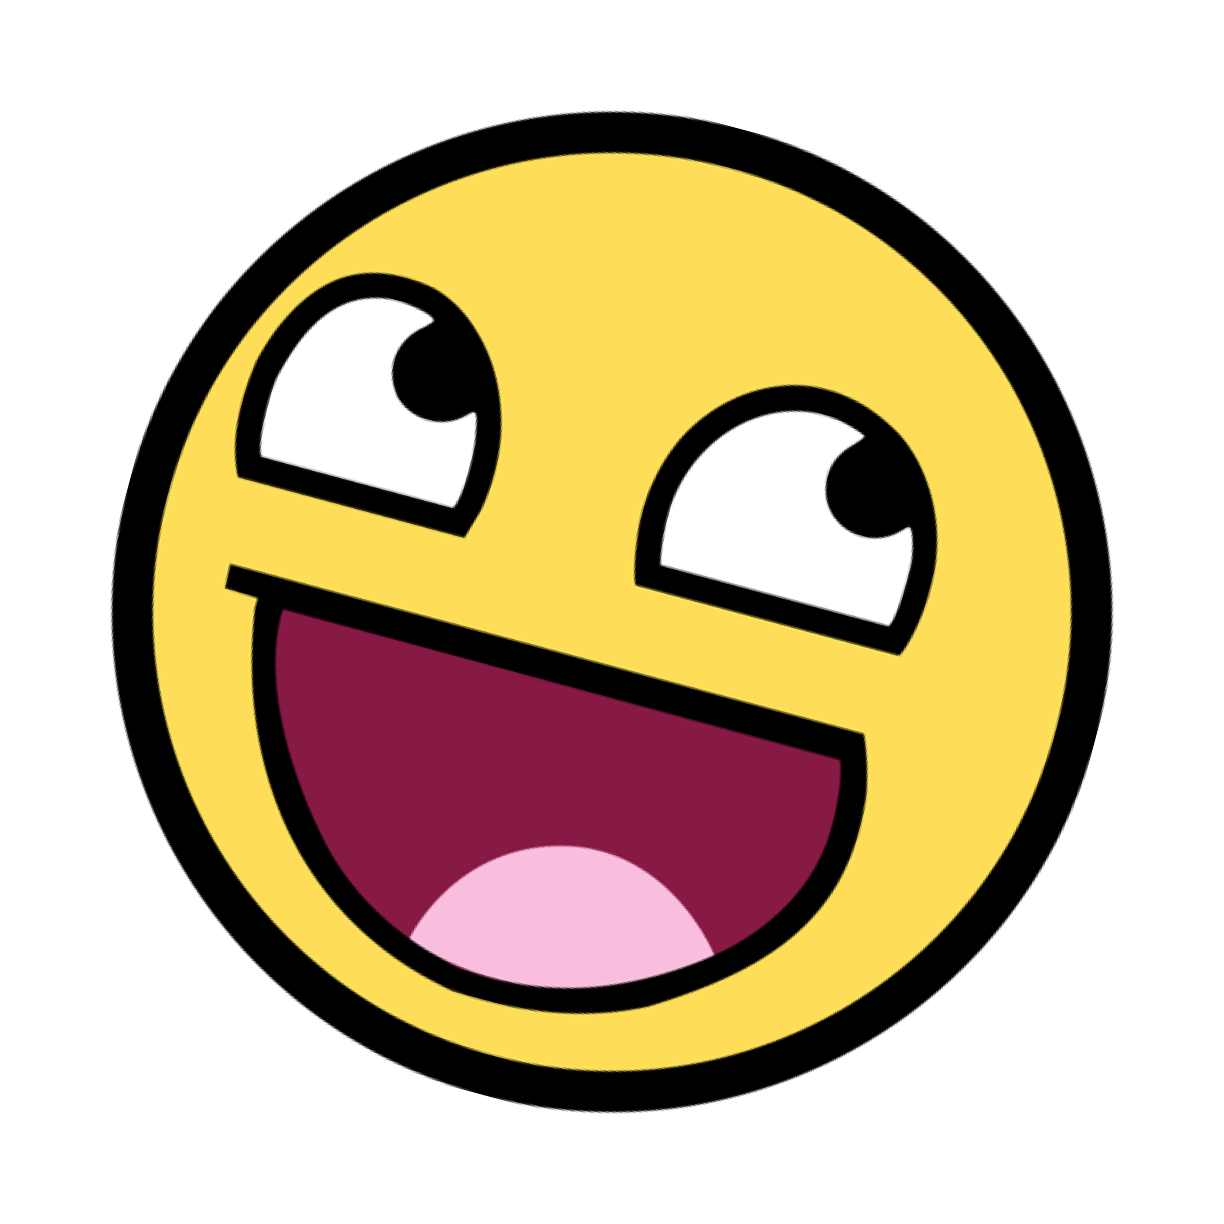 Epic smiley png. Image awesome face pose